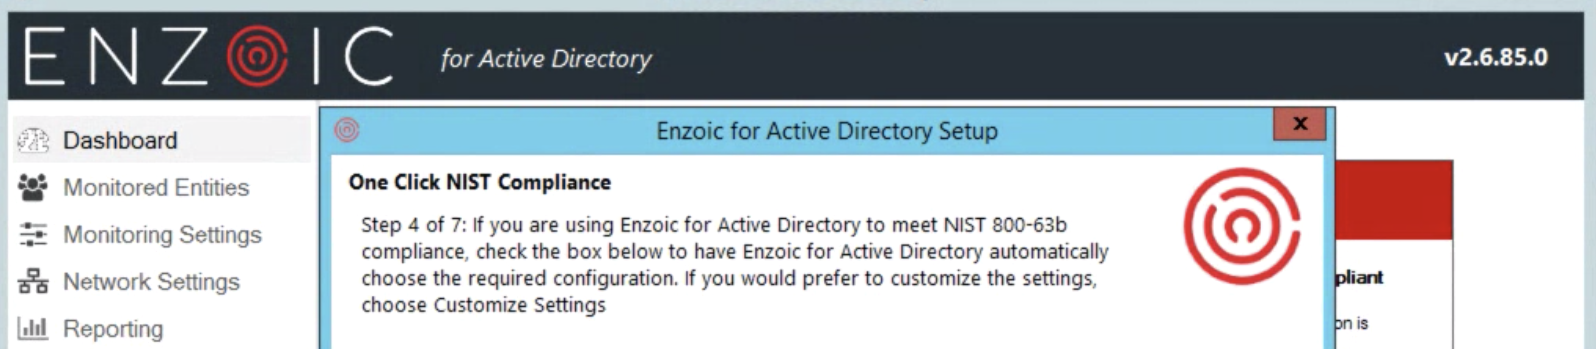 Creating a NIST Password Policy for Active Directory https://www.enzoic.com/creating-a-nist-password-policy-for-active-directory/